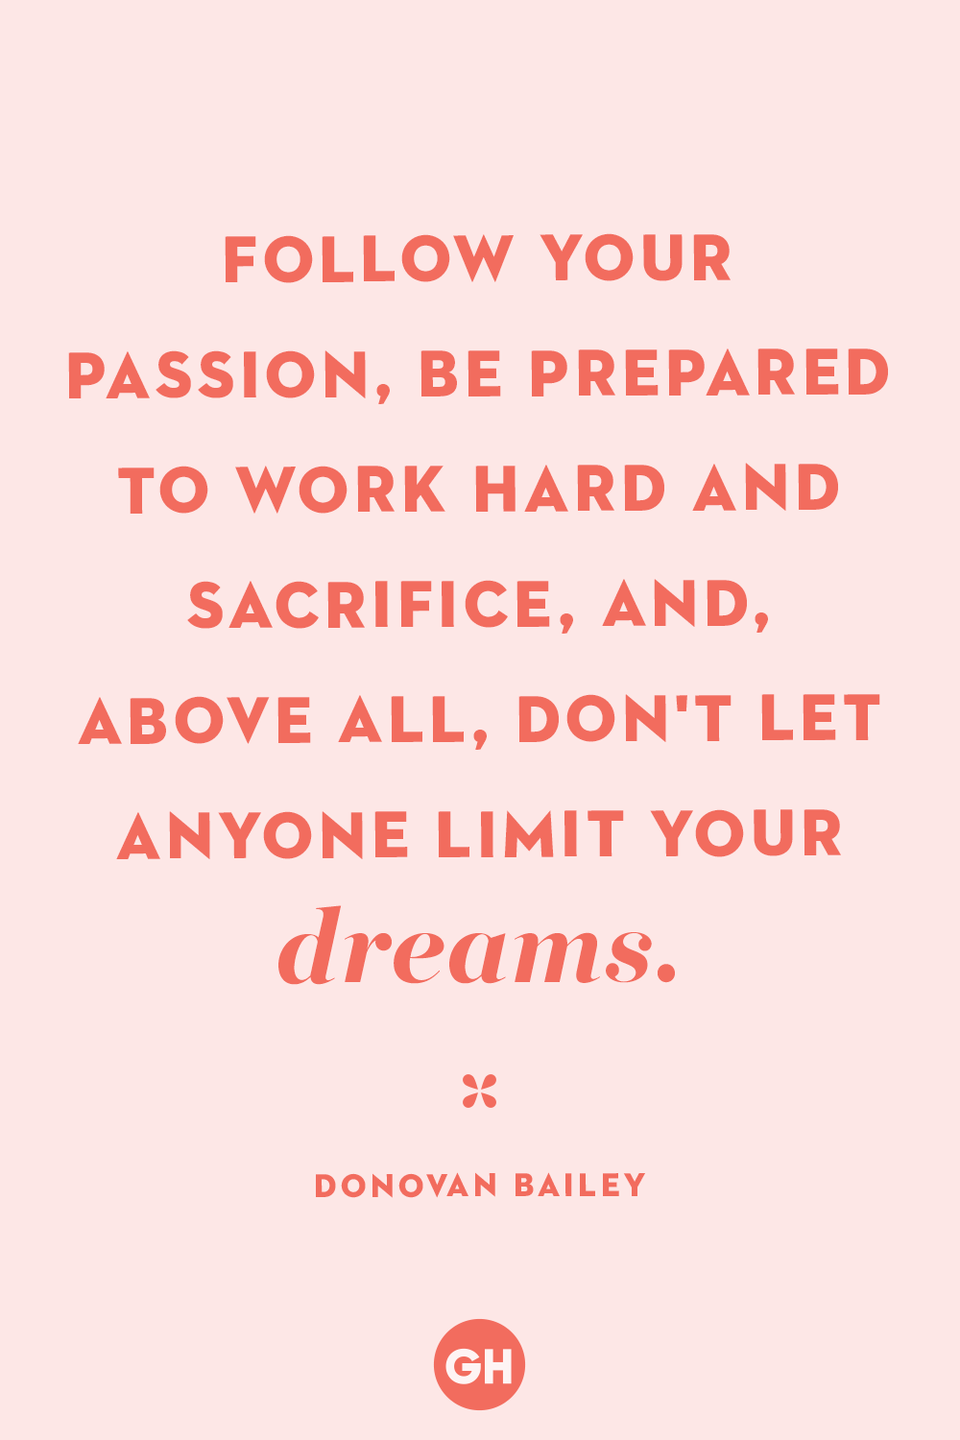 <p>Follow your passion, be prepared to work hard and sacrifice, and, above all, don't let anyone limit your dreams.</p>